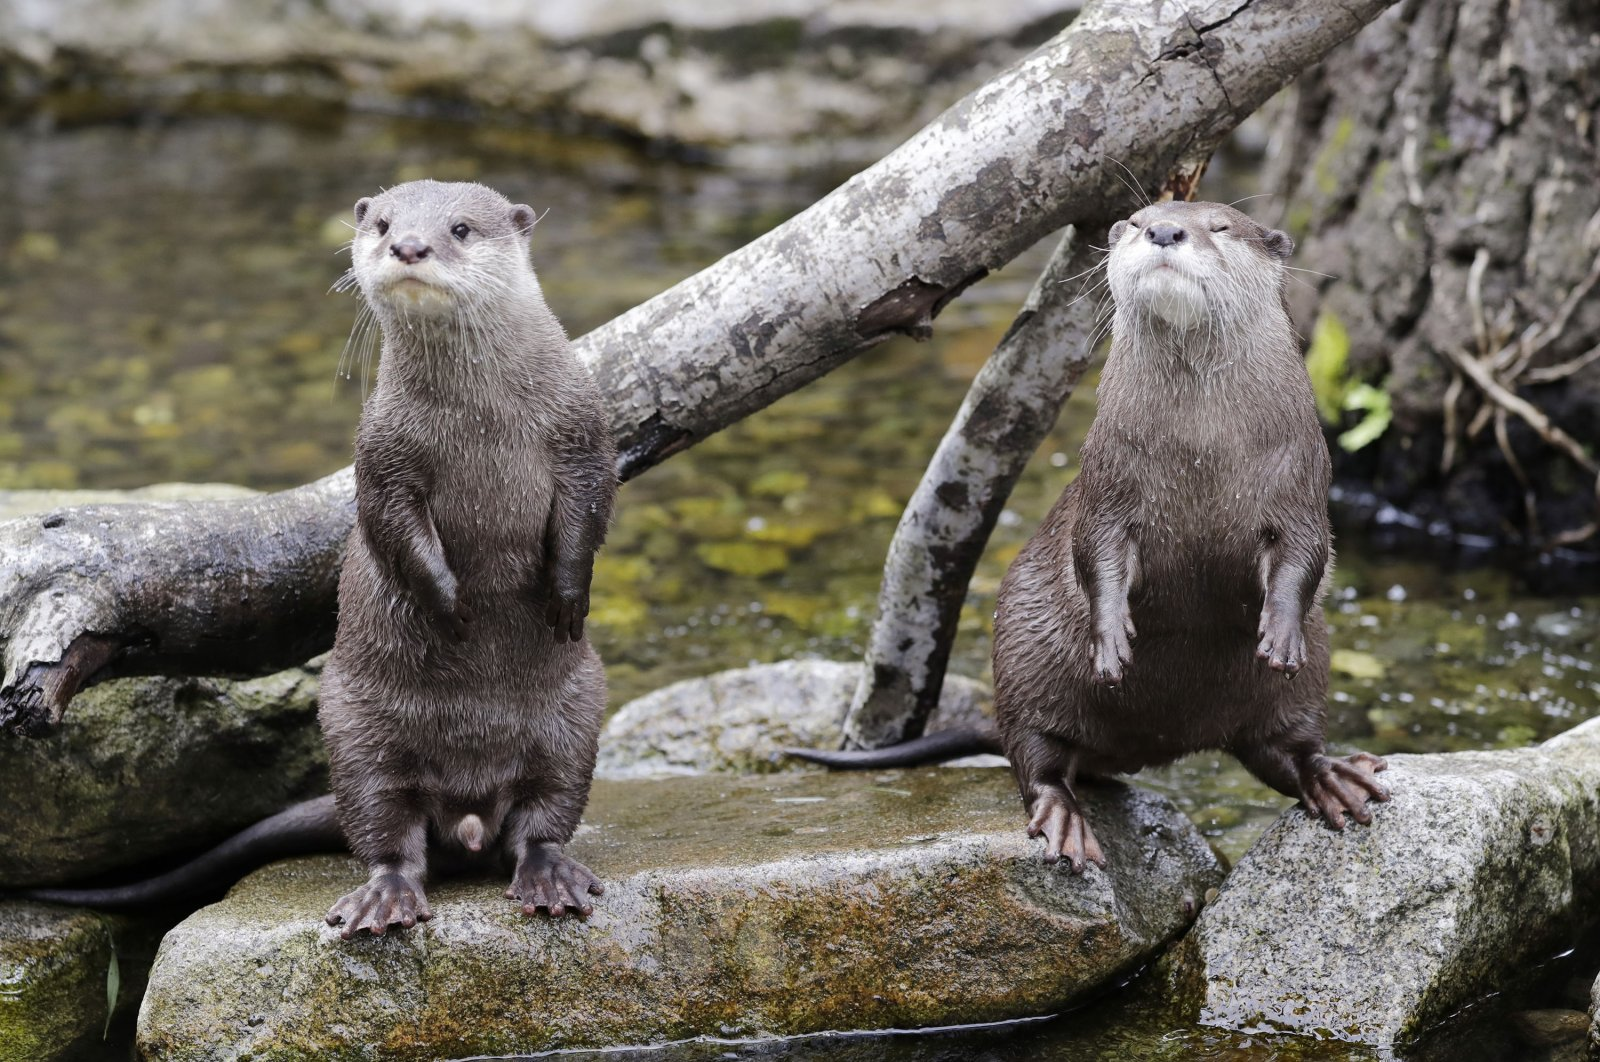 Asian small-clawed otters wait for their lunch at the Woodland Park Zoo, closed for nearly three months because of the coronavirus outbreak, in Seattle, Washington, U.S., May 26, 2020. (AP Photo)